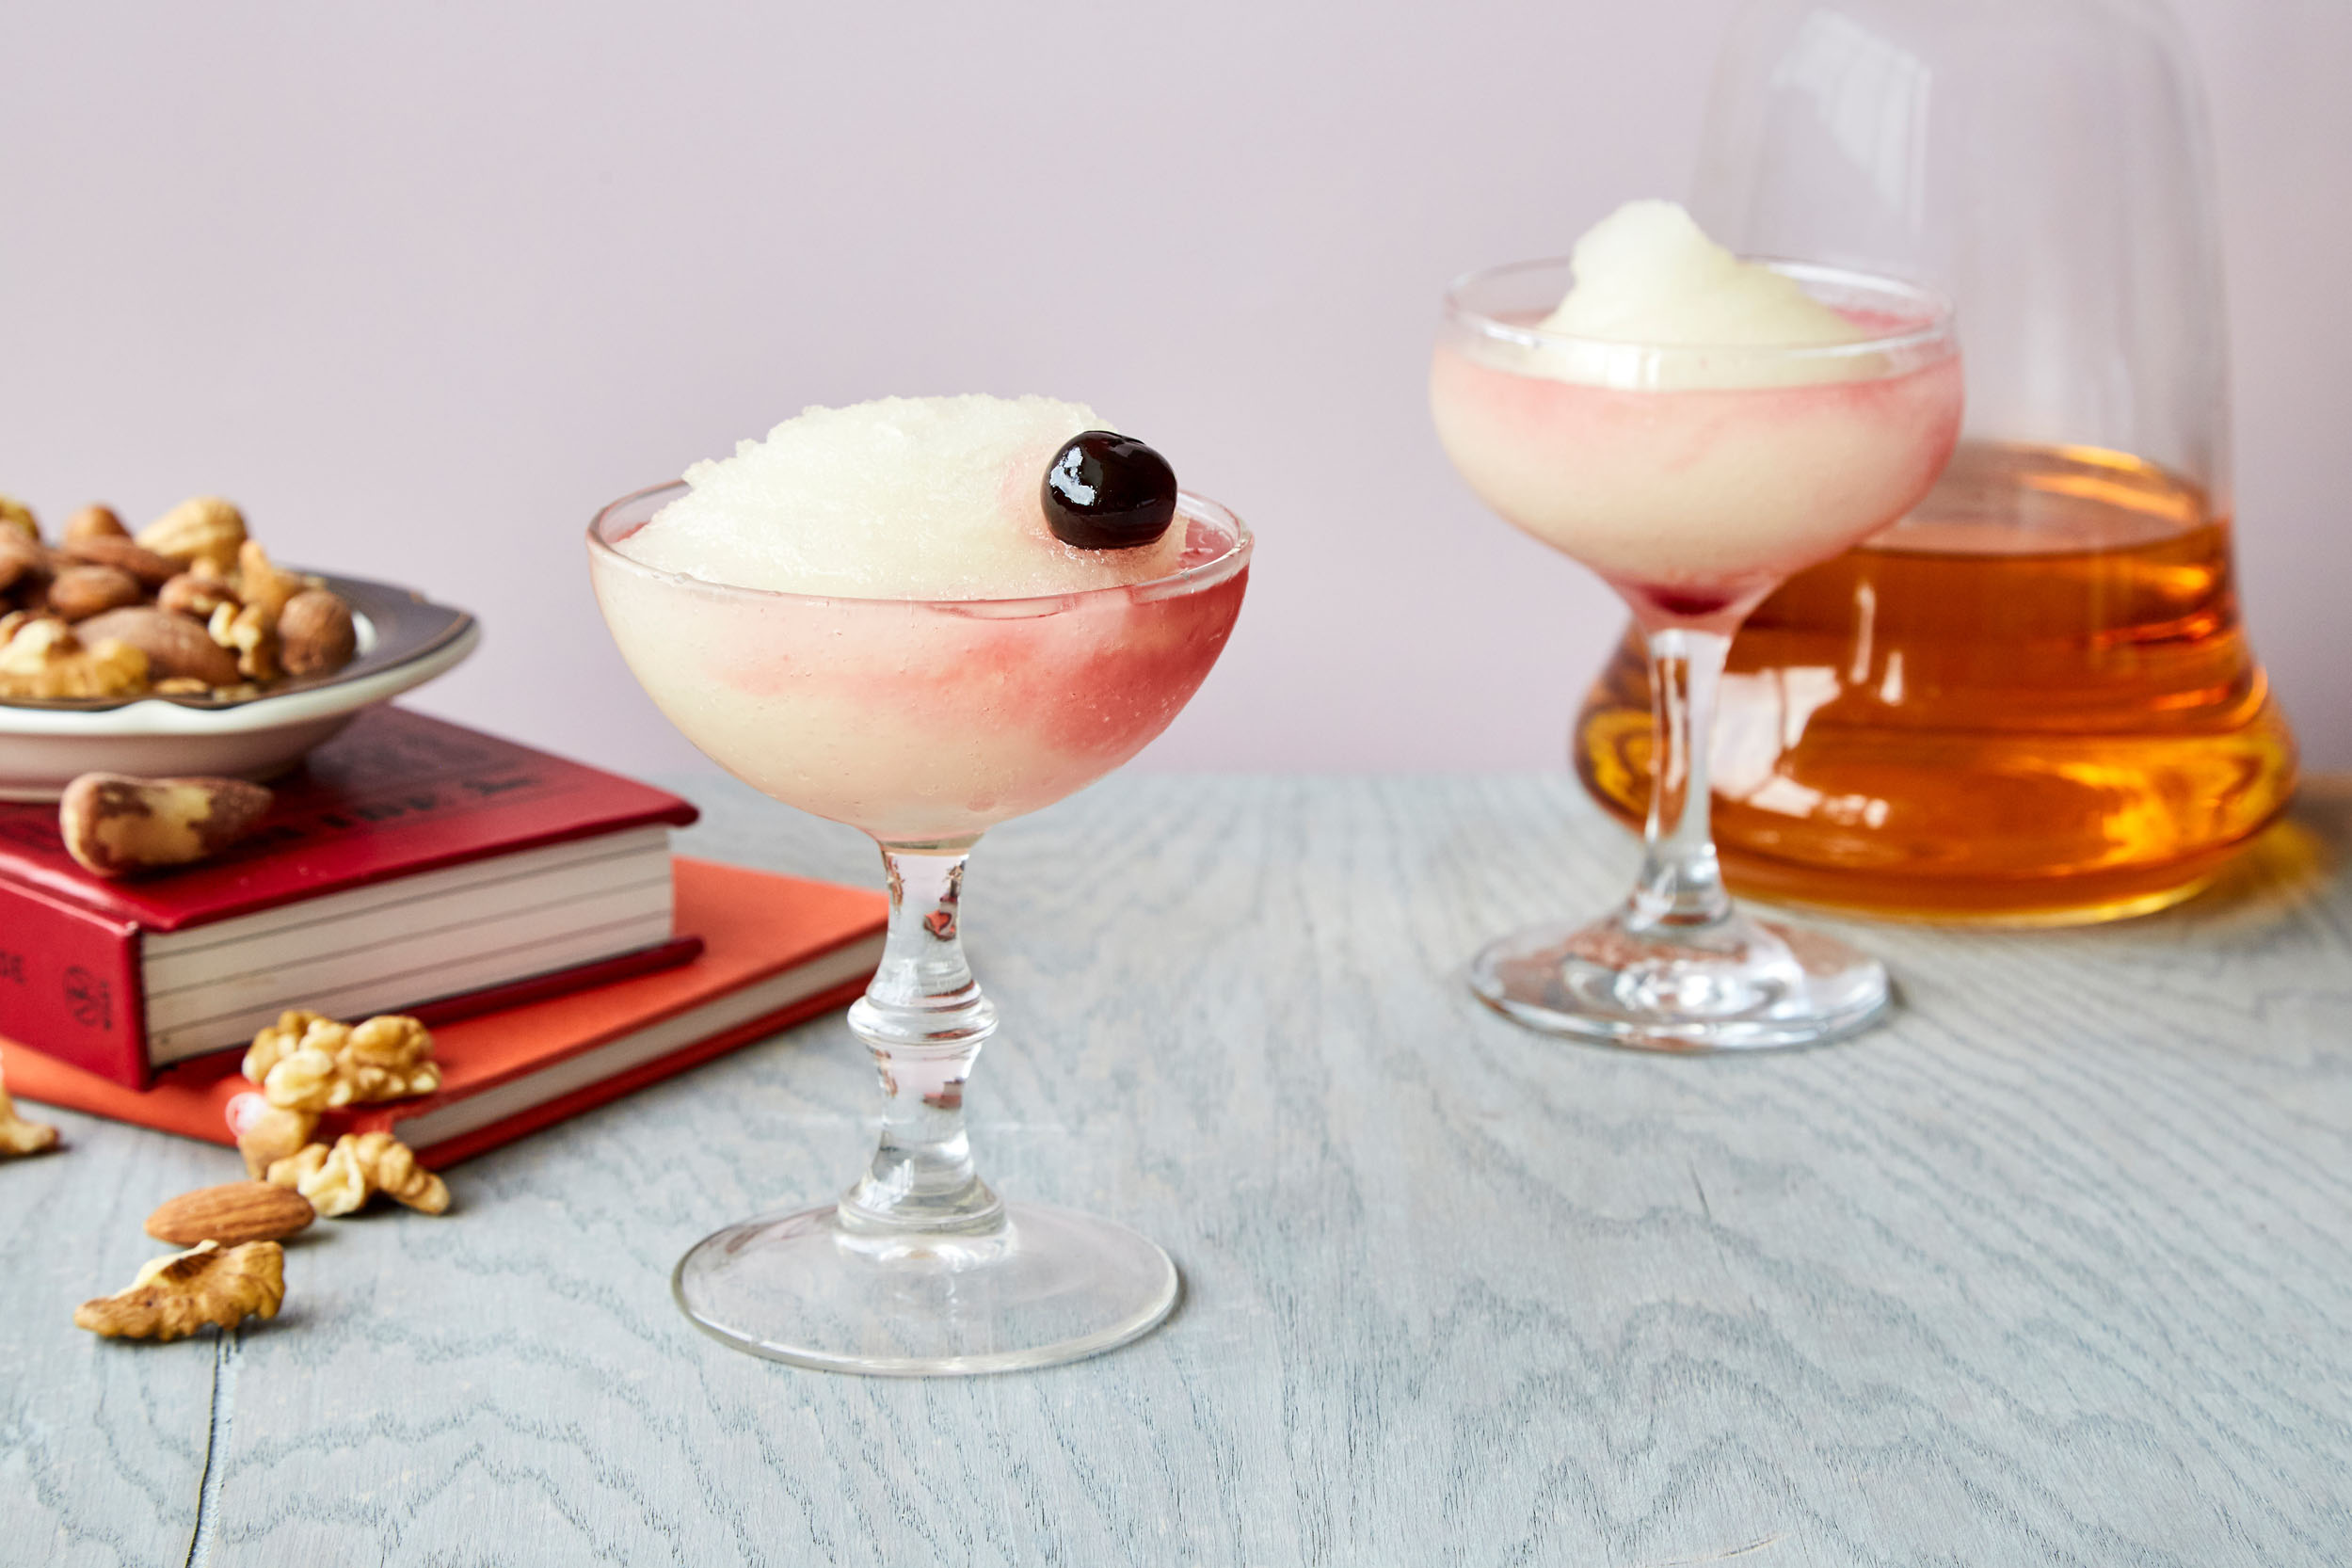 Hemingway daiquiri in a glass with a cherry.